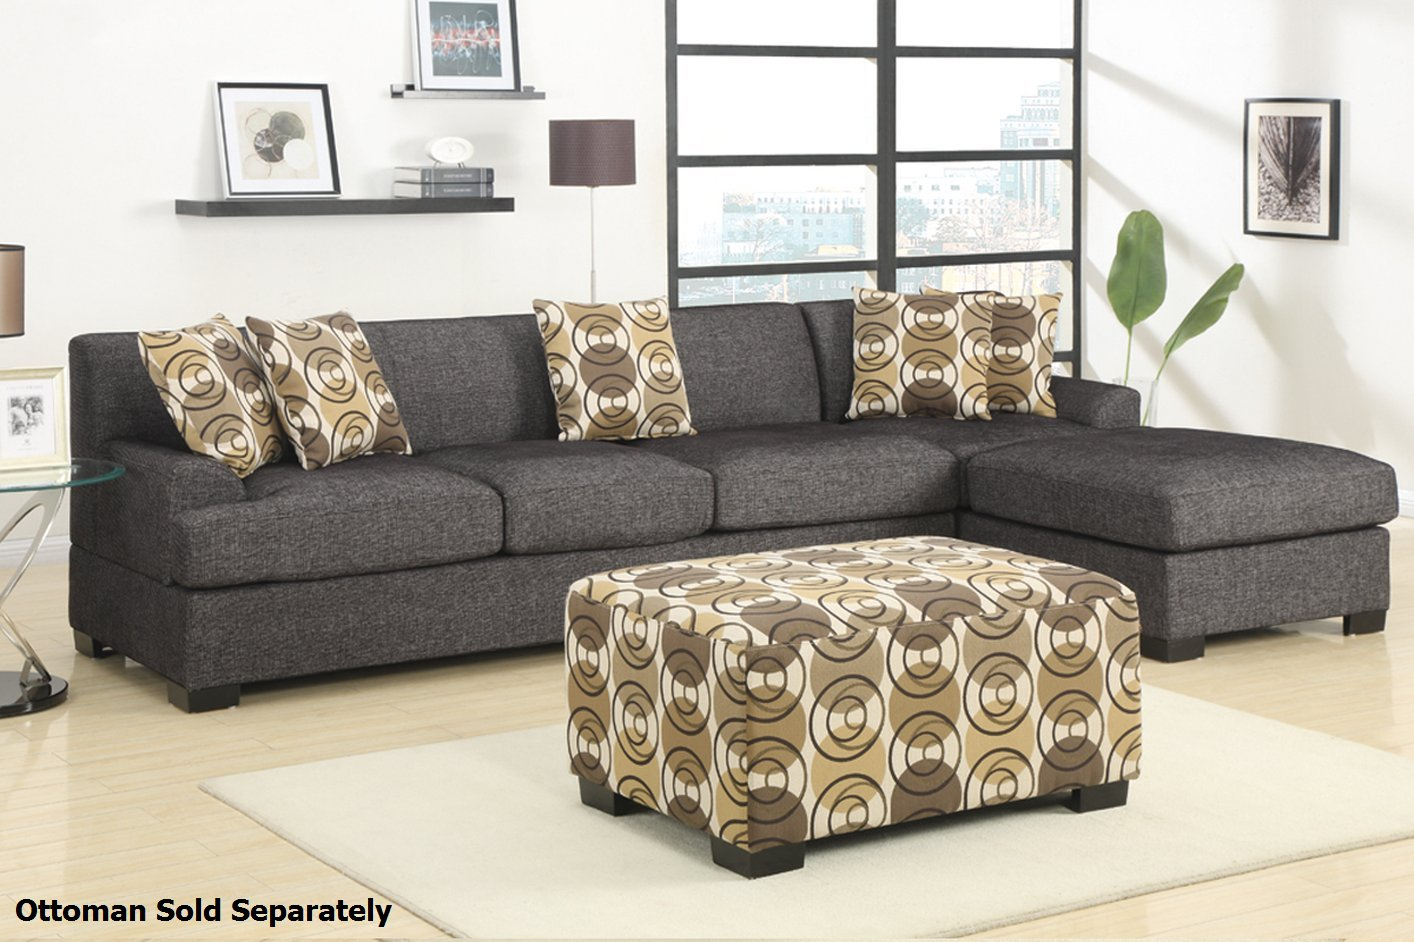 Tremendous Sectional Sofas Montreal Home Decor 88 Inzonedesignstudio Interior Chair Design Inzonedesignstudiocom